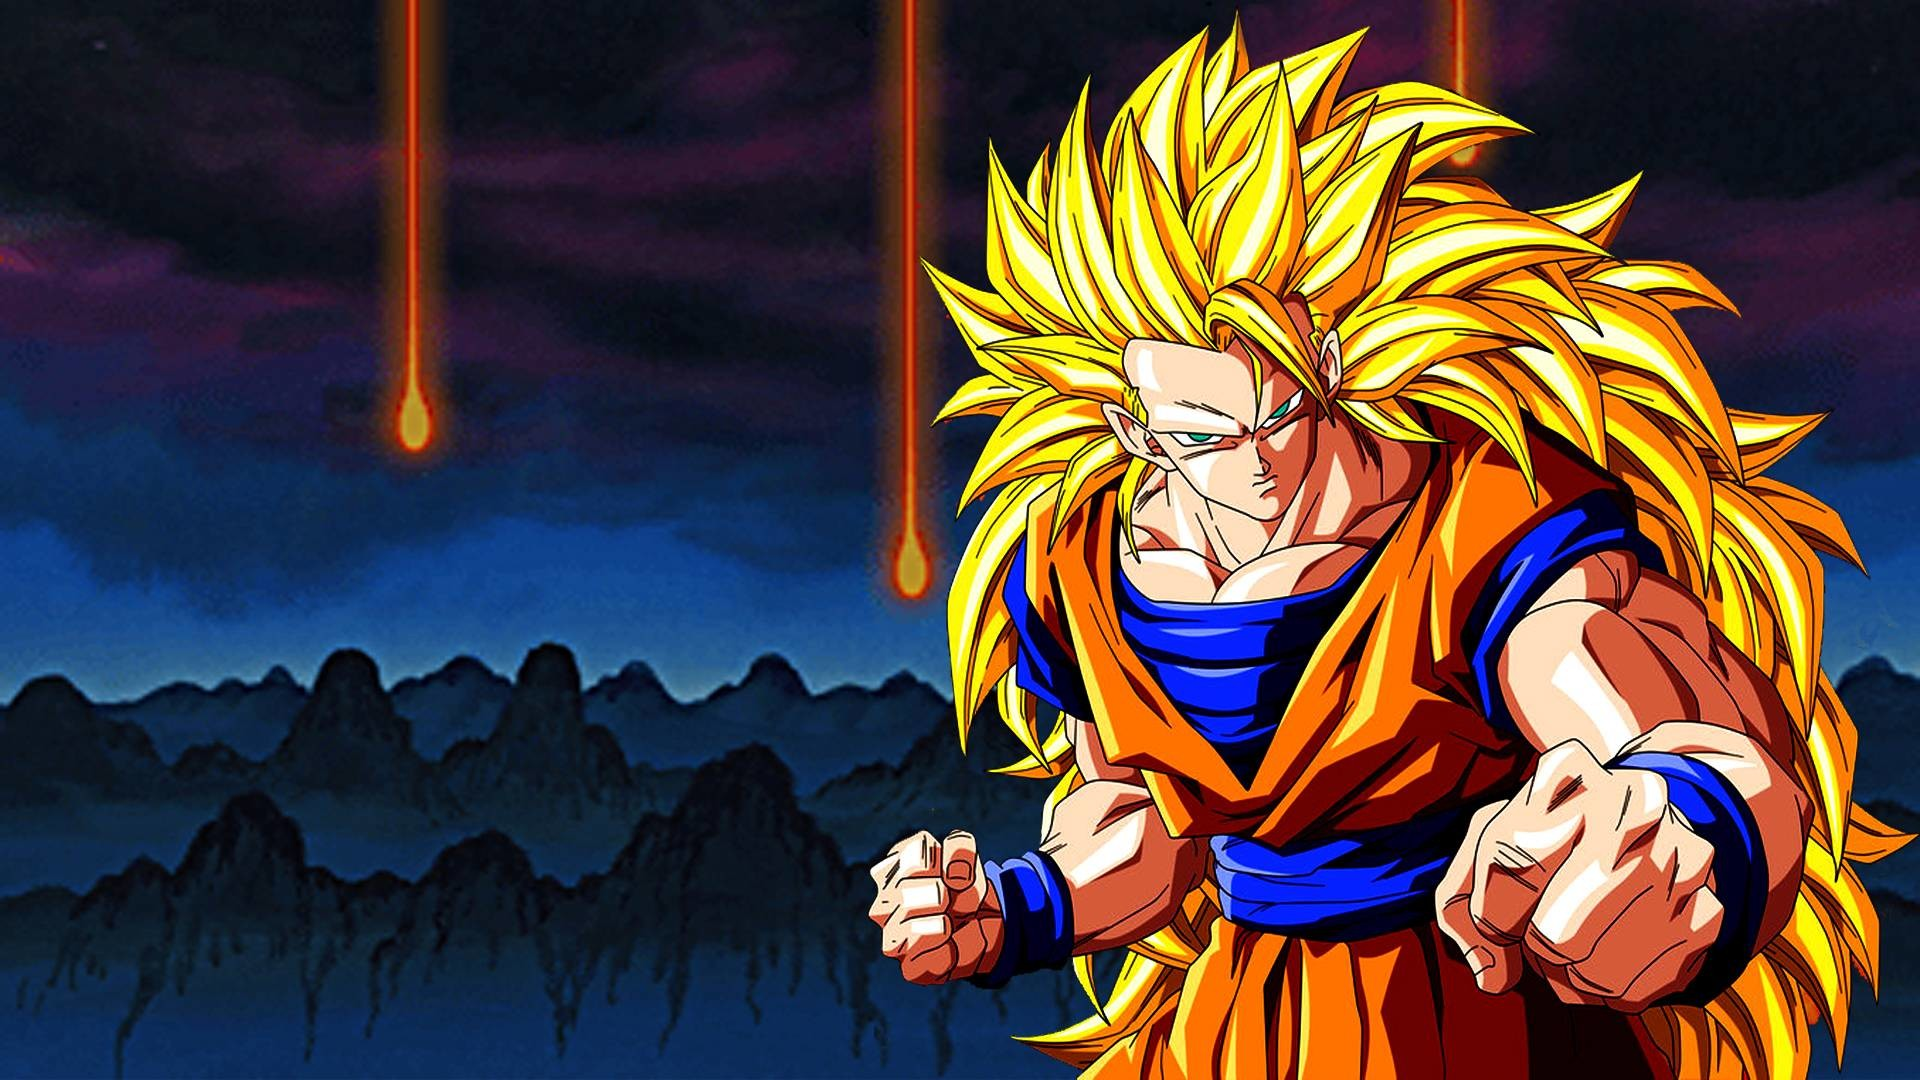 Dragon Ball Z Goku Wallpaper Wallpapertag